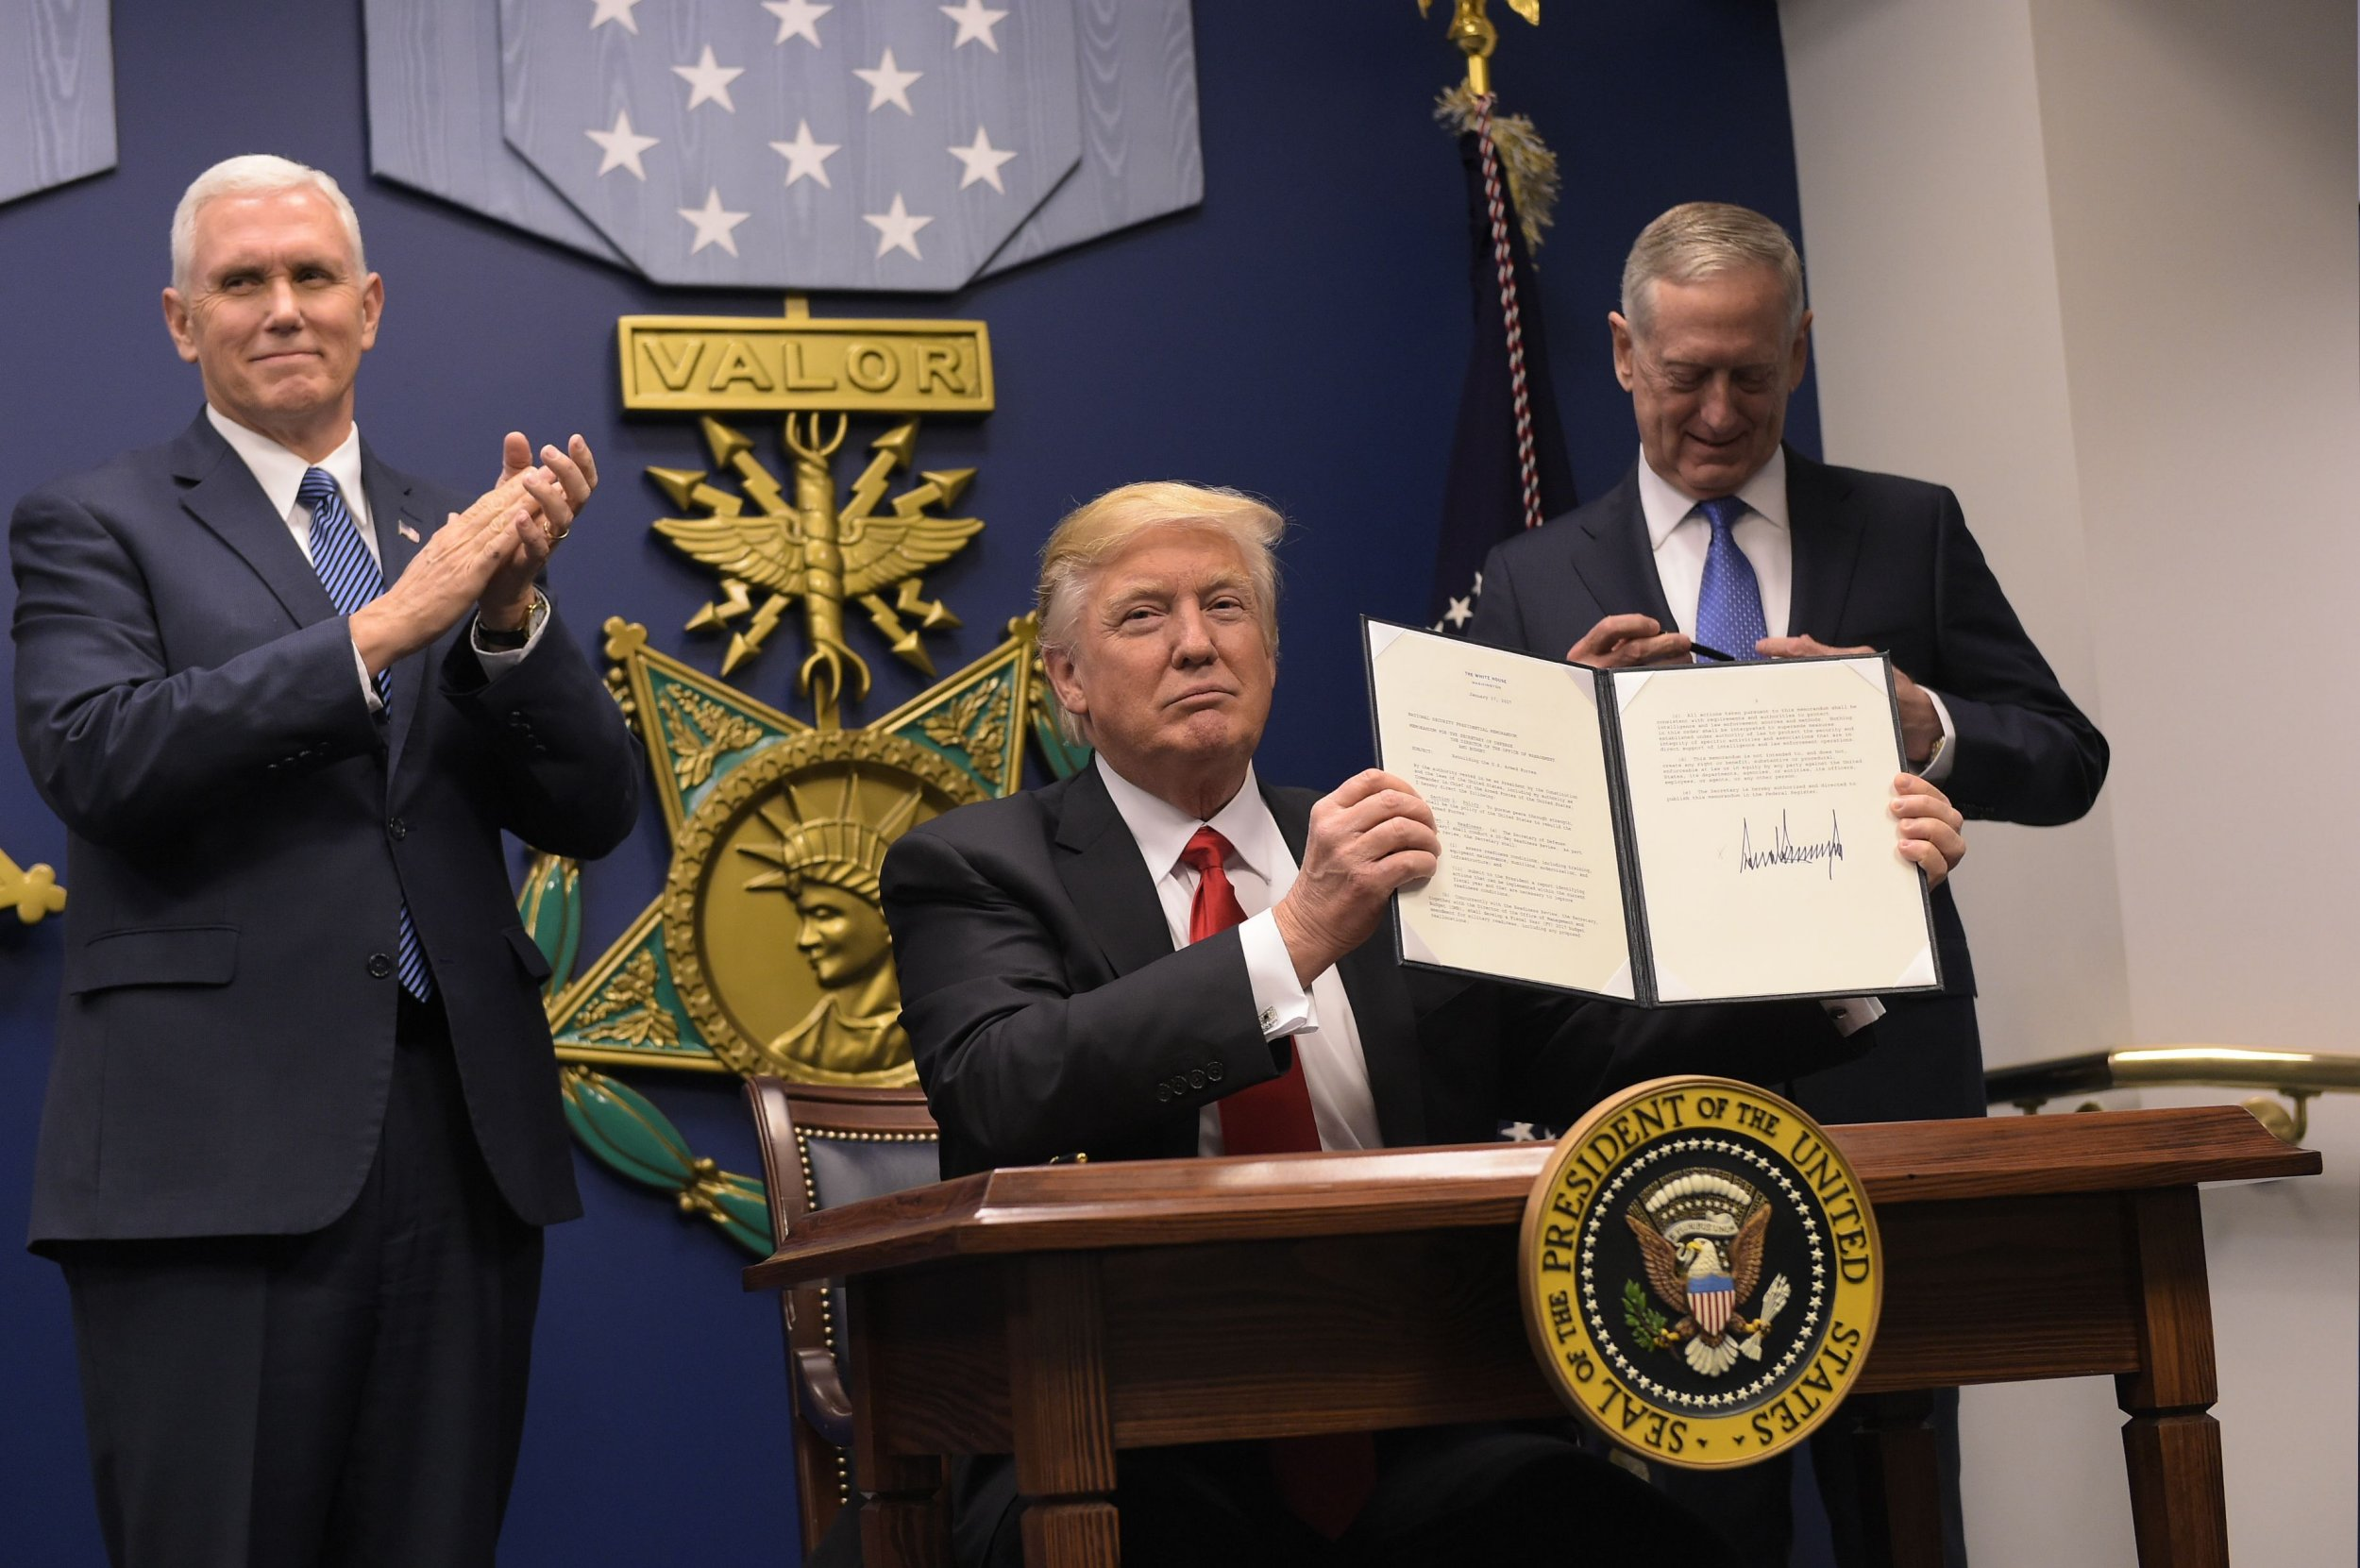 """US President Donald Trump shows his signature on executive orders alongside US Defense Secretary James Mattis and US Vice President Muike Pence on January 27, 2016 at the Pentagon in Washington, DC. Trump signed an order Friday to begin what he called a """"great rebuilding"""" of the US armed services, promising new aircraft, naval ships and more resources for the military. """"Our military strength will be questioned by no one, but neither will our dedication to peace. We do want peace,"""" Trump said in a ceremony at the Pentagon. / AFP PHOTO / MANDEL NGANMANDEL NGAN/AFP/Getty Images"""